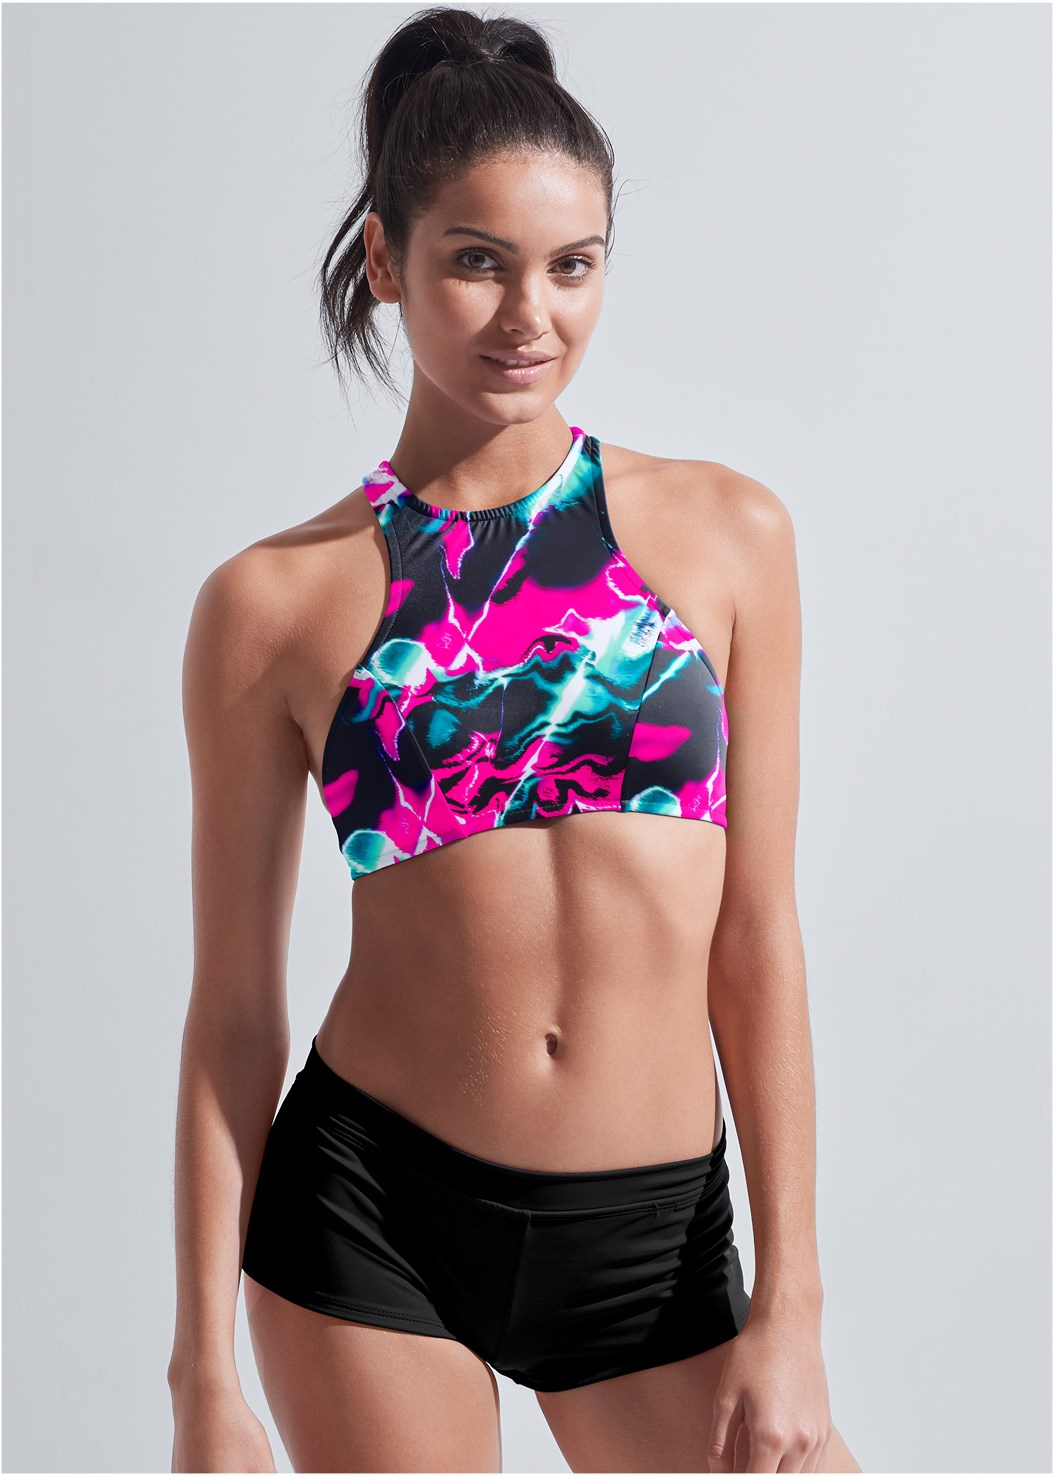 Sports Illustrated Swim™ High Neck Sport Top,Sports Illustrated Swim™ Cheeky Short,Sports Illustrated Swim™ High Waist Bottom,Sports Illustrated Swim™ Cut Out Sides Bottom